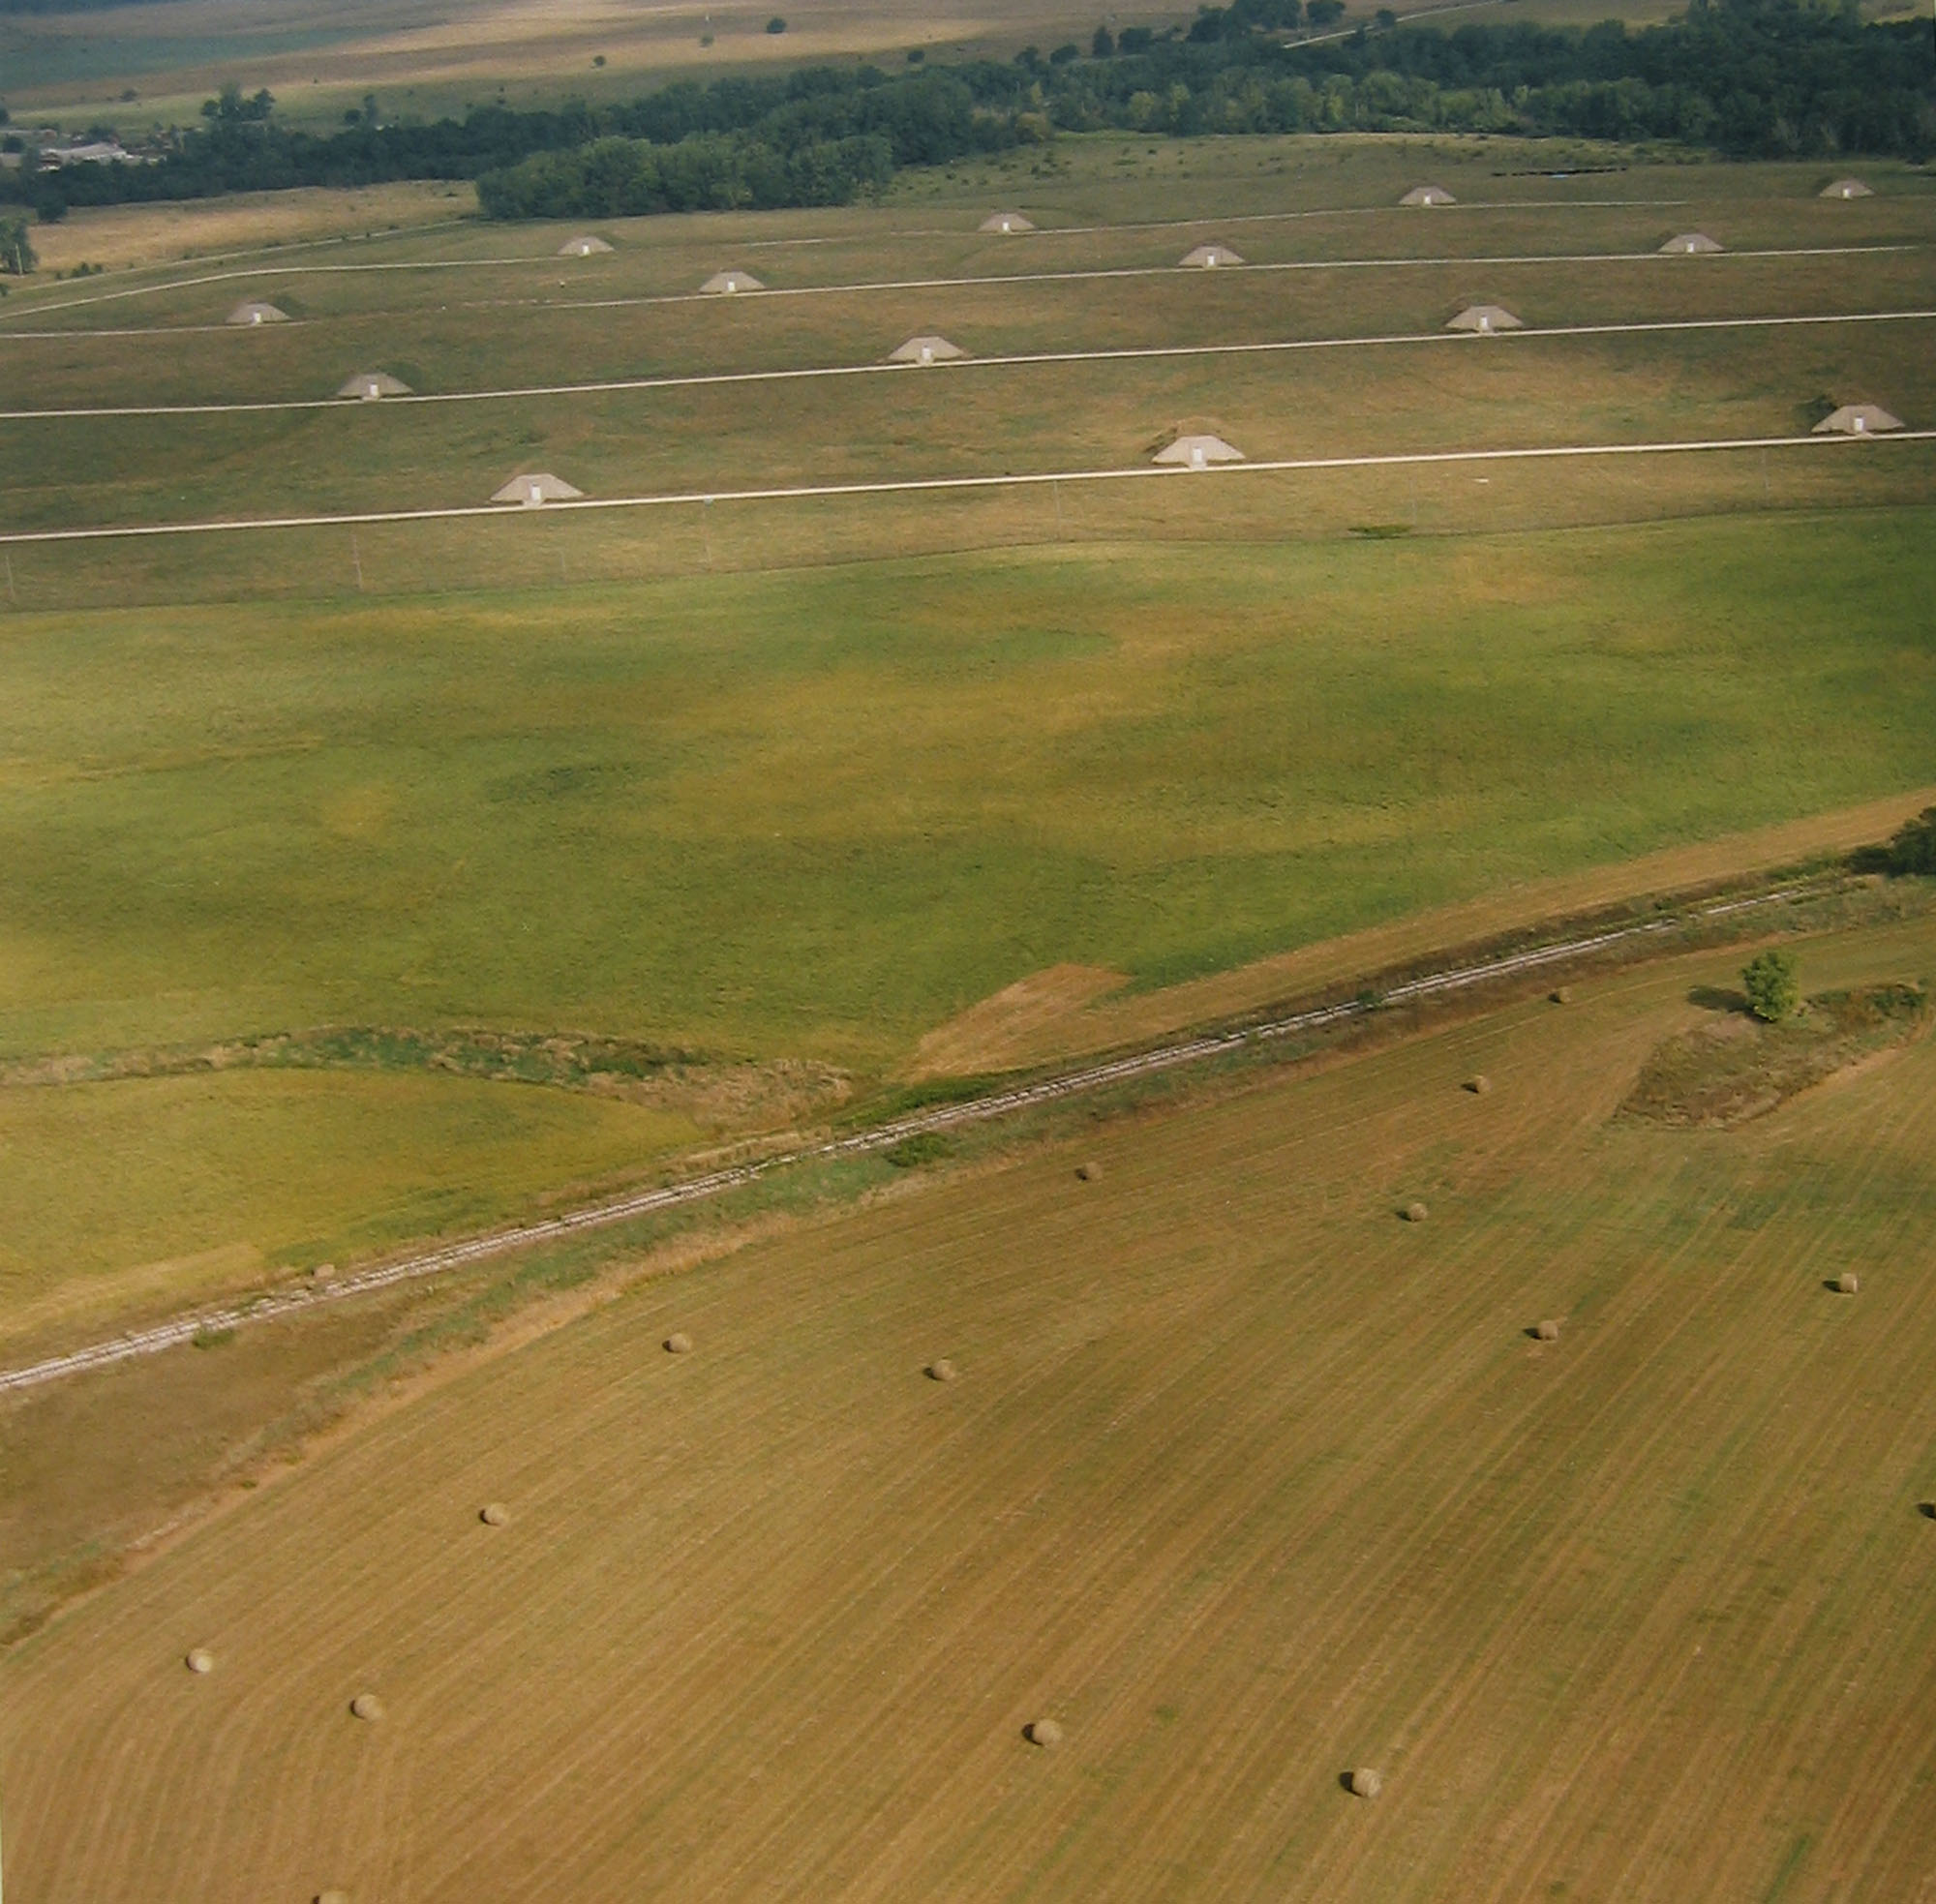 Ammunition storage bunkers and hay bales, September 9, 1995